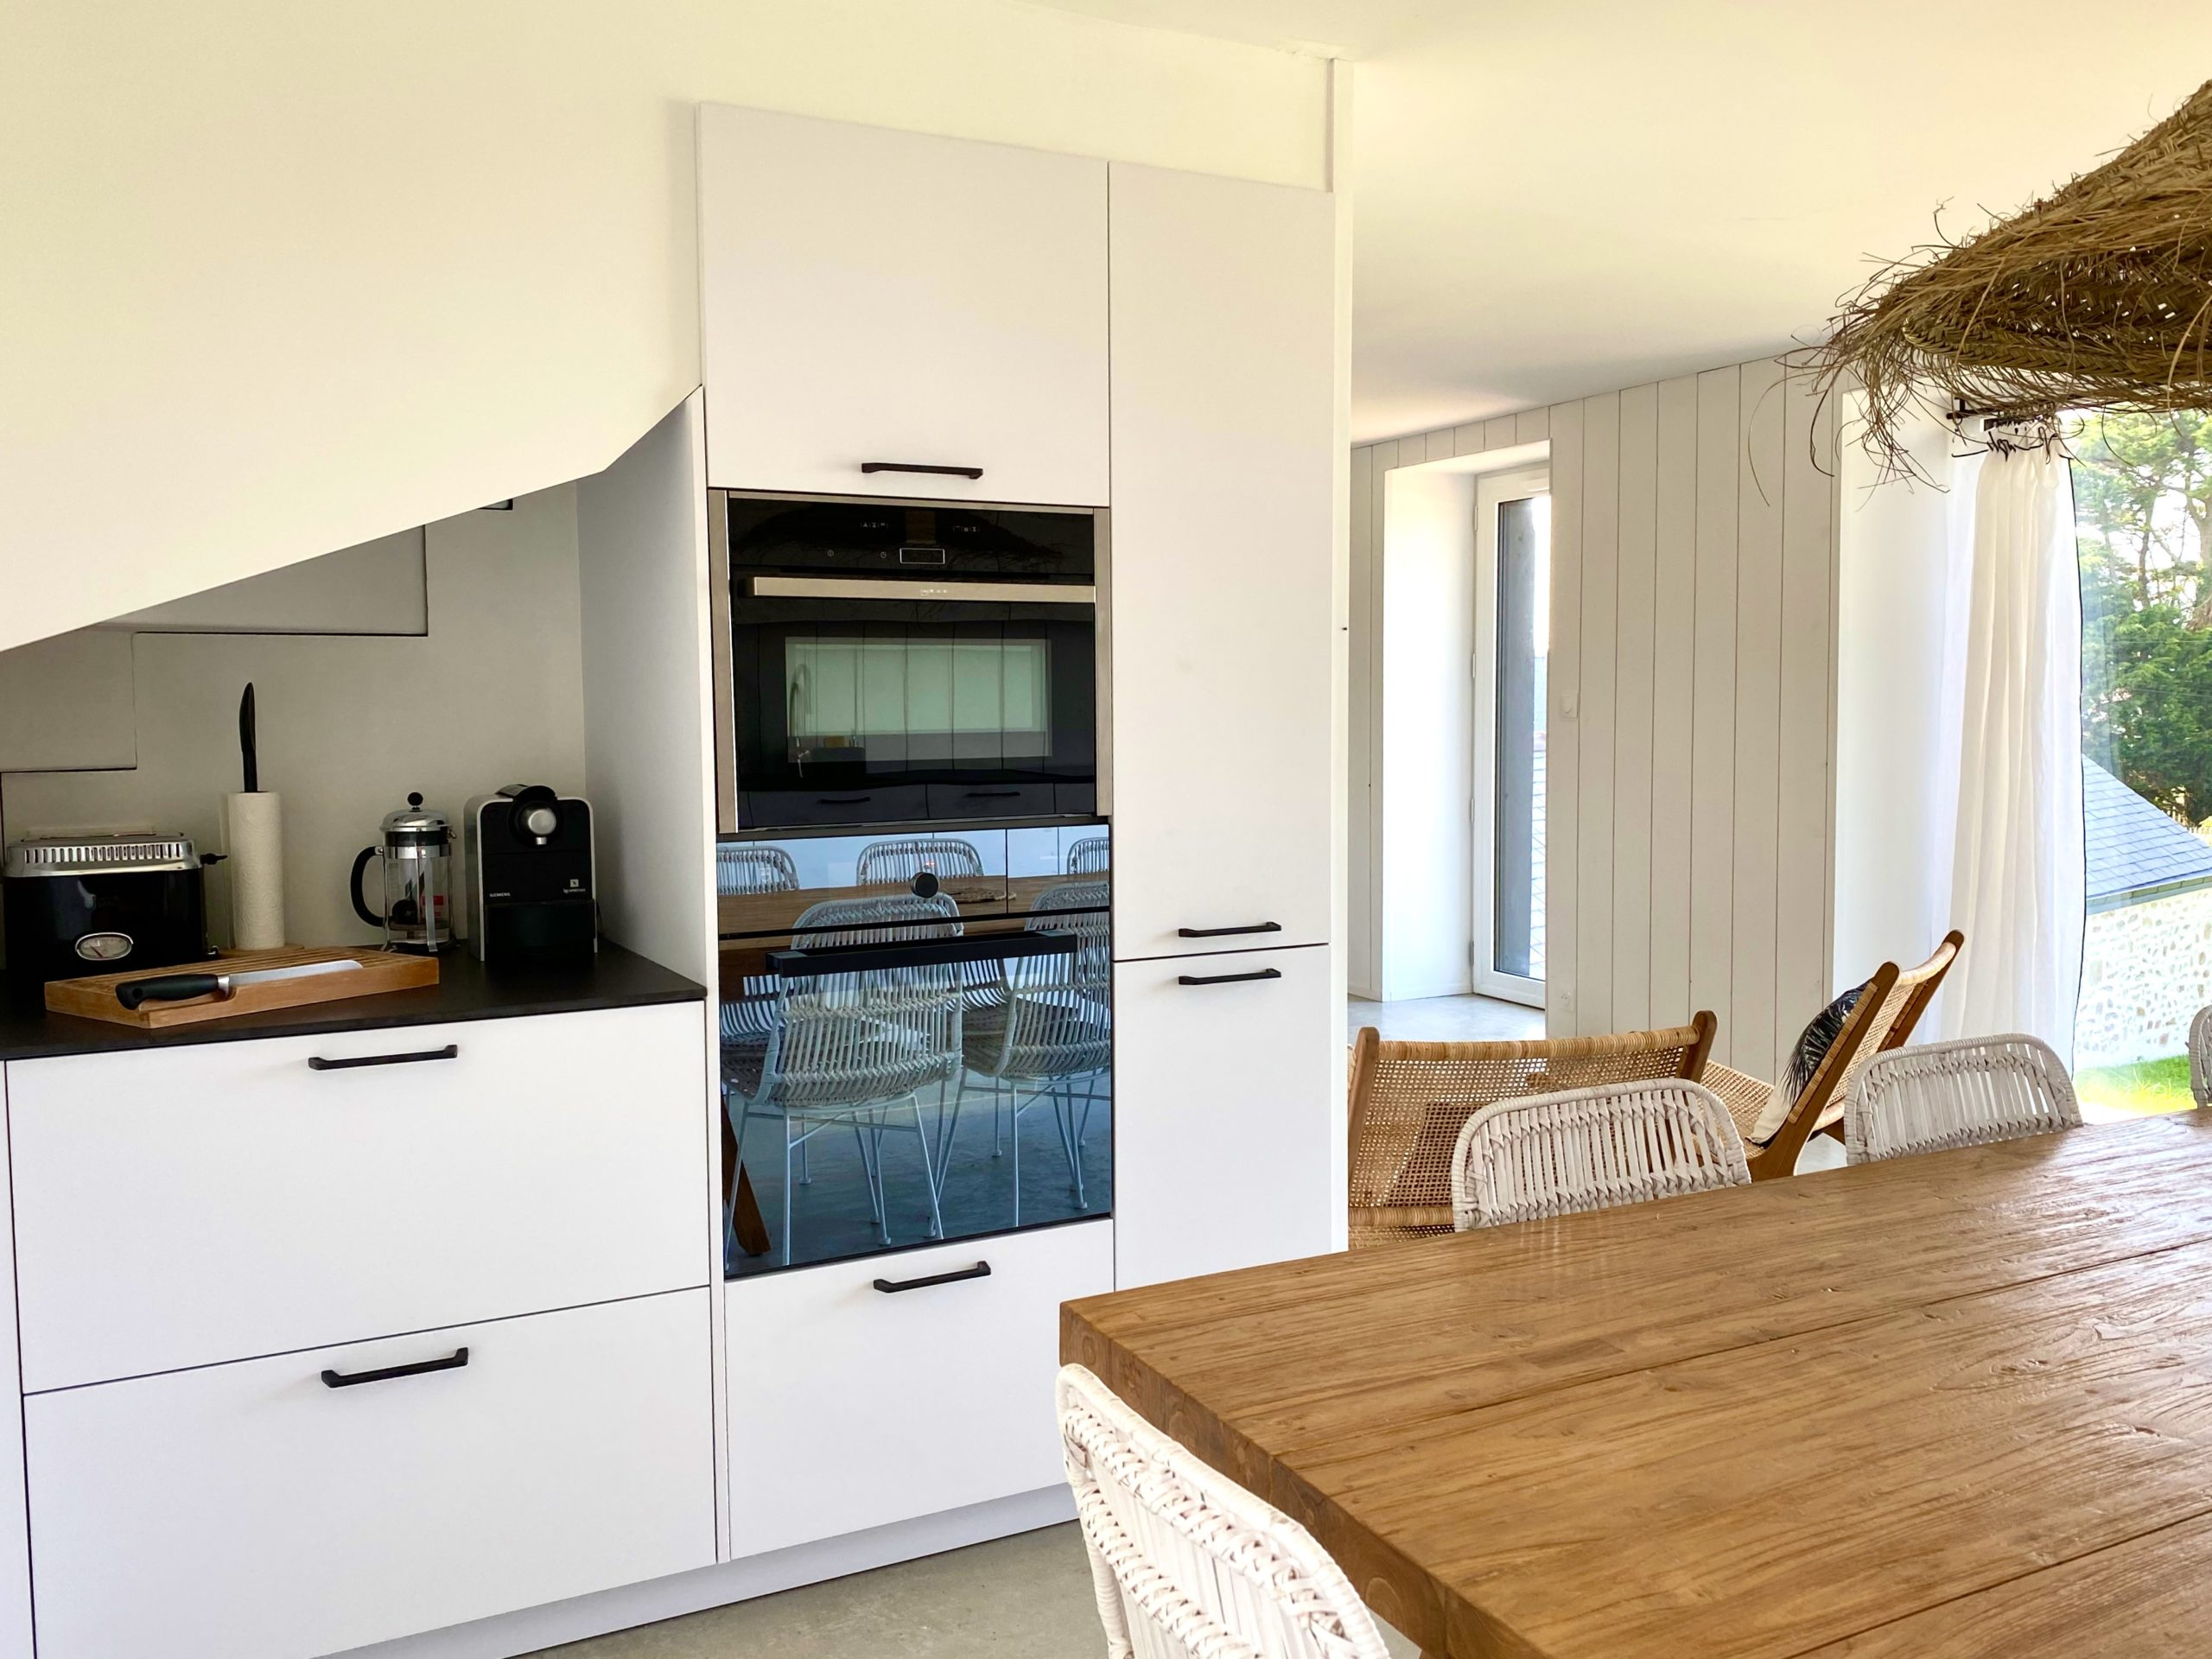 Very complete kitchen equipment: combined steam oven and combined microwave oven!